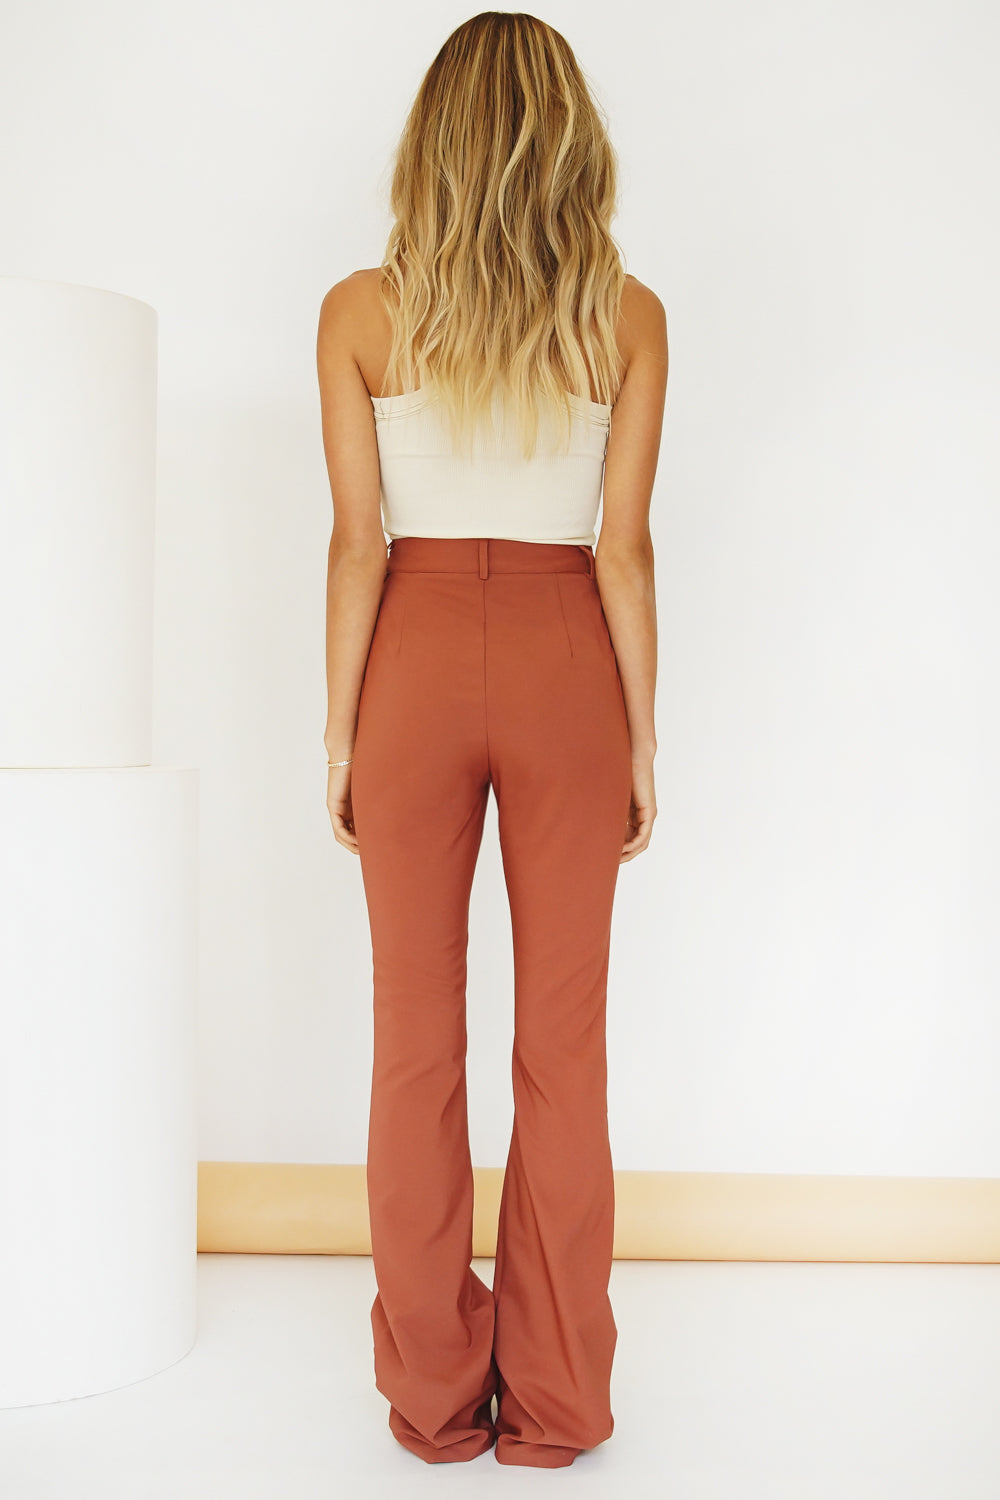 VRG GRL To The Bar Pants // Clay